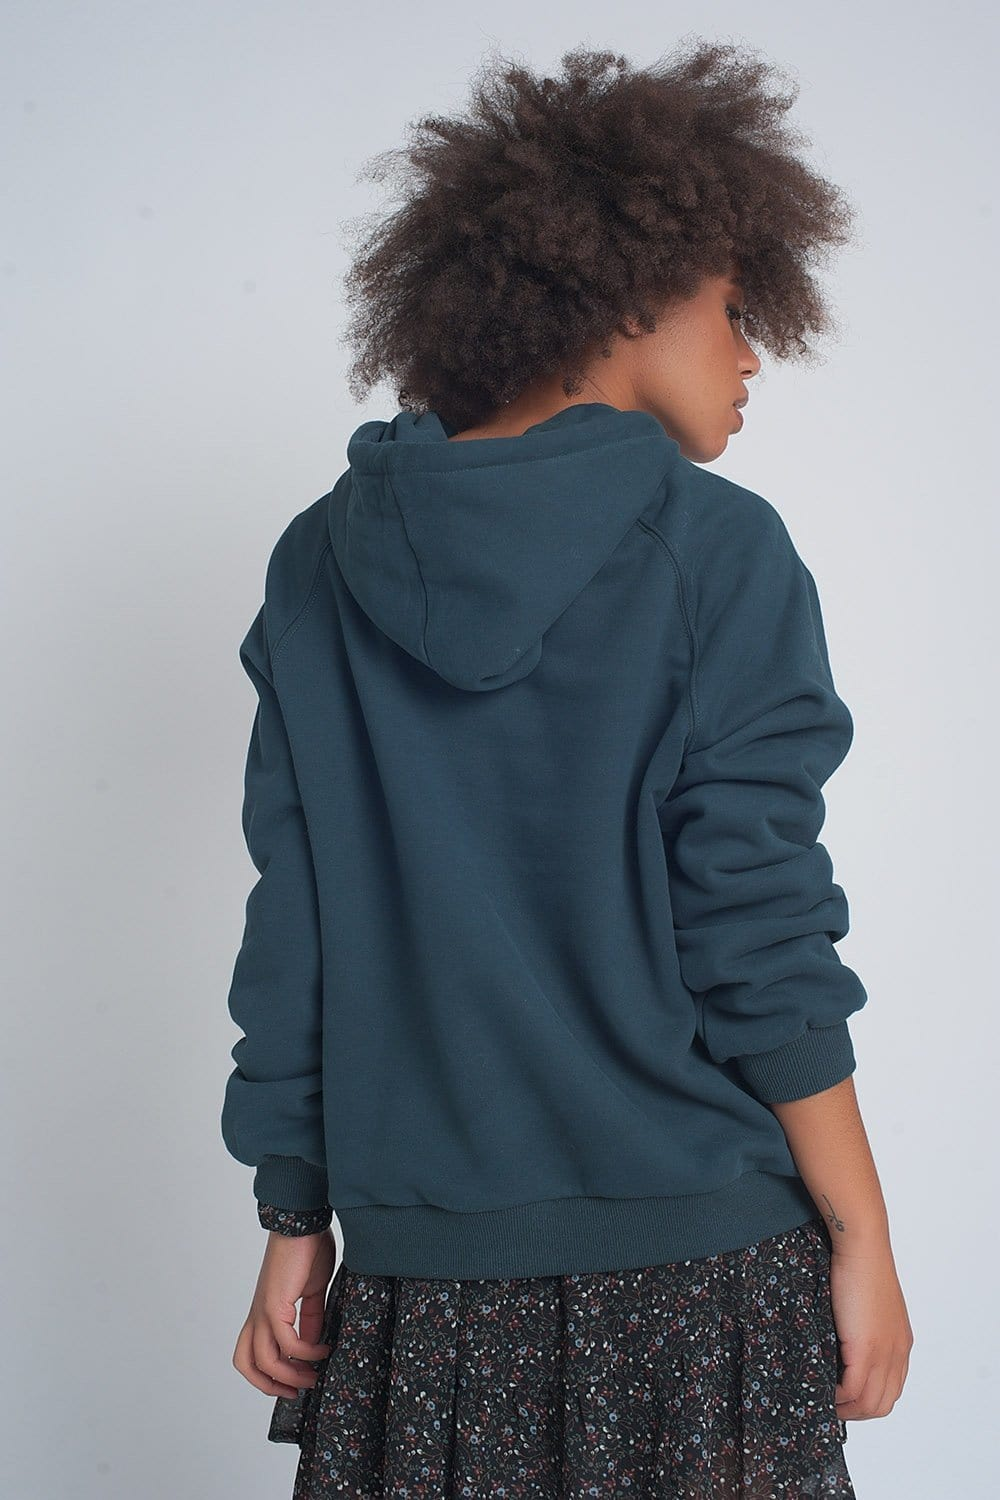 Sweatshirt with Text Print in Green - Himelhoch's